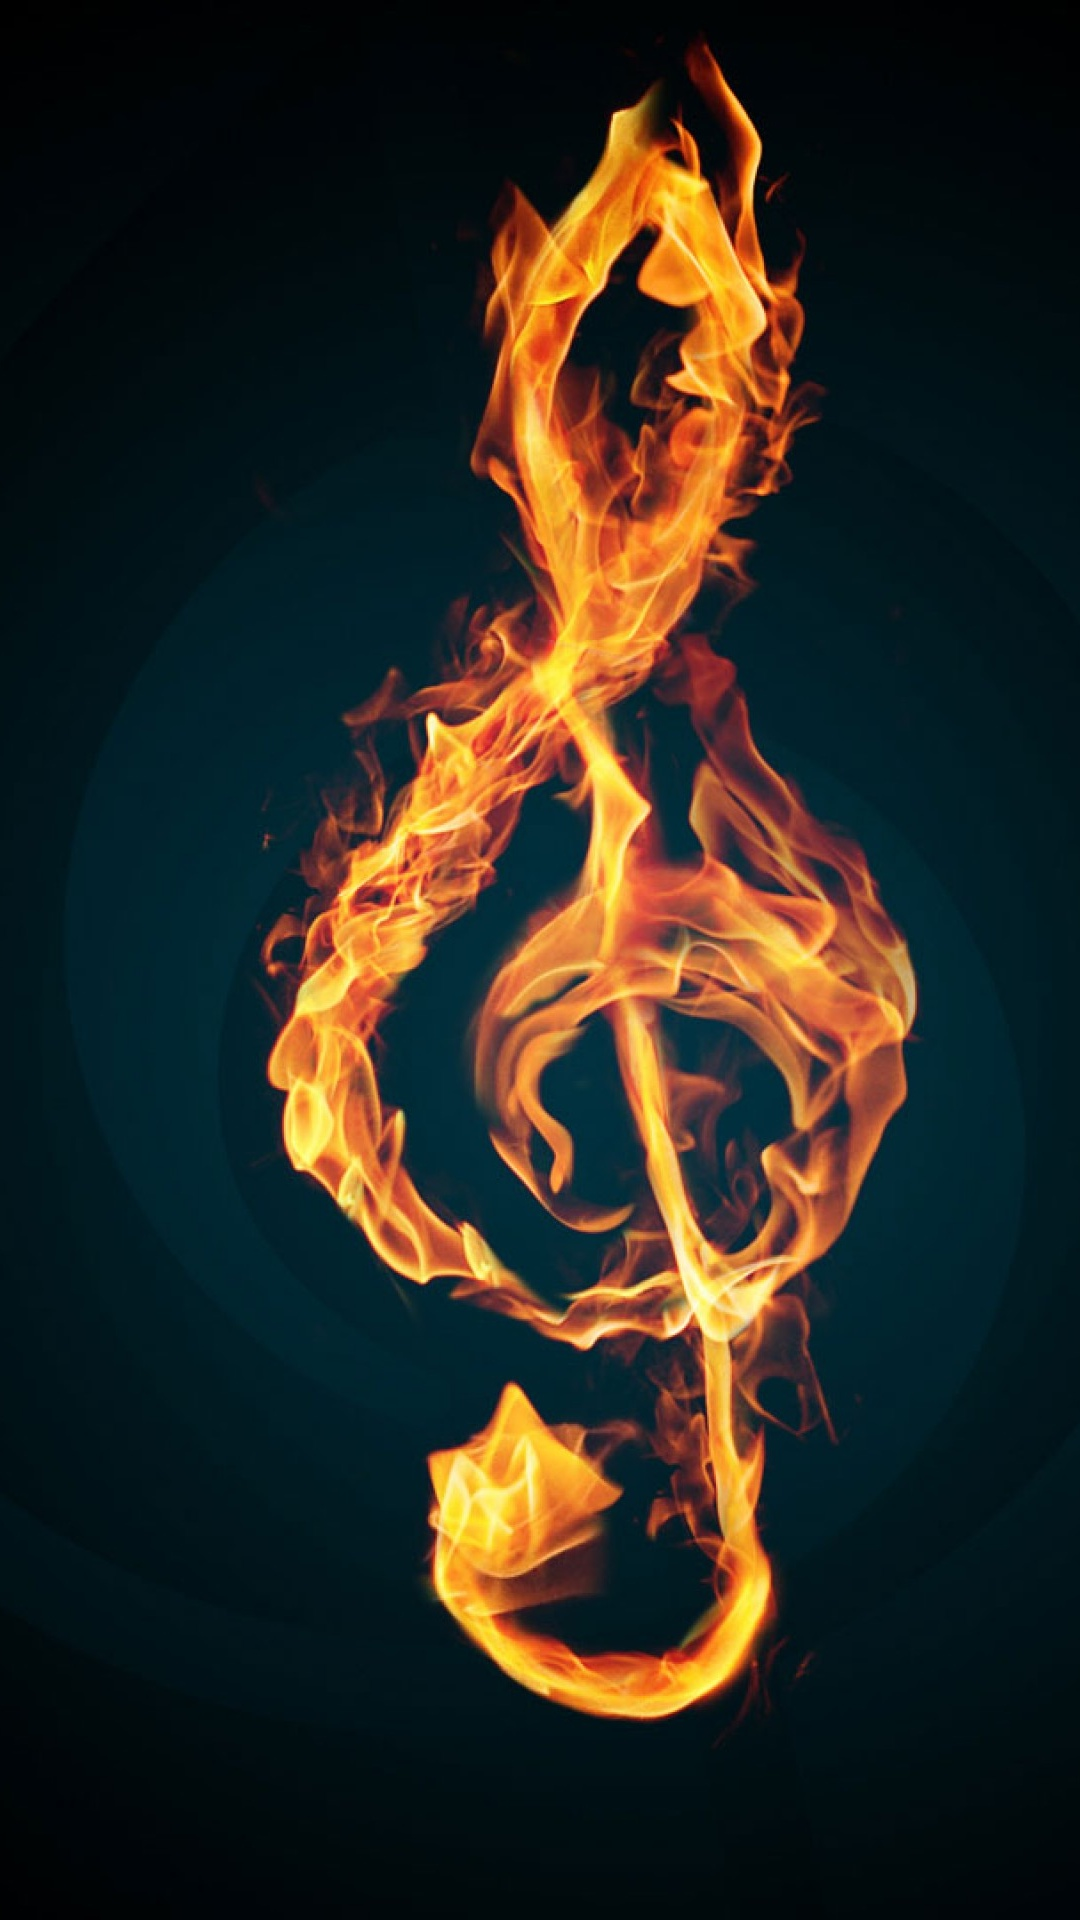 Great Wallpaper Music Note 3 - Wallpapers-For-Galaxy-S4-Music-7  Trends_310039.jpg